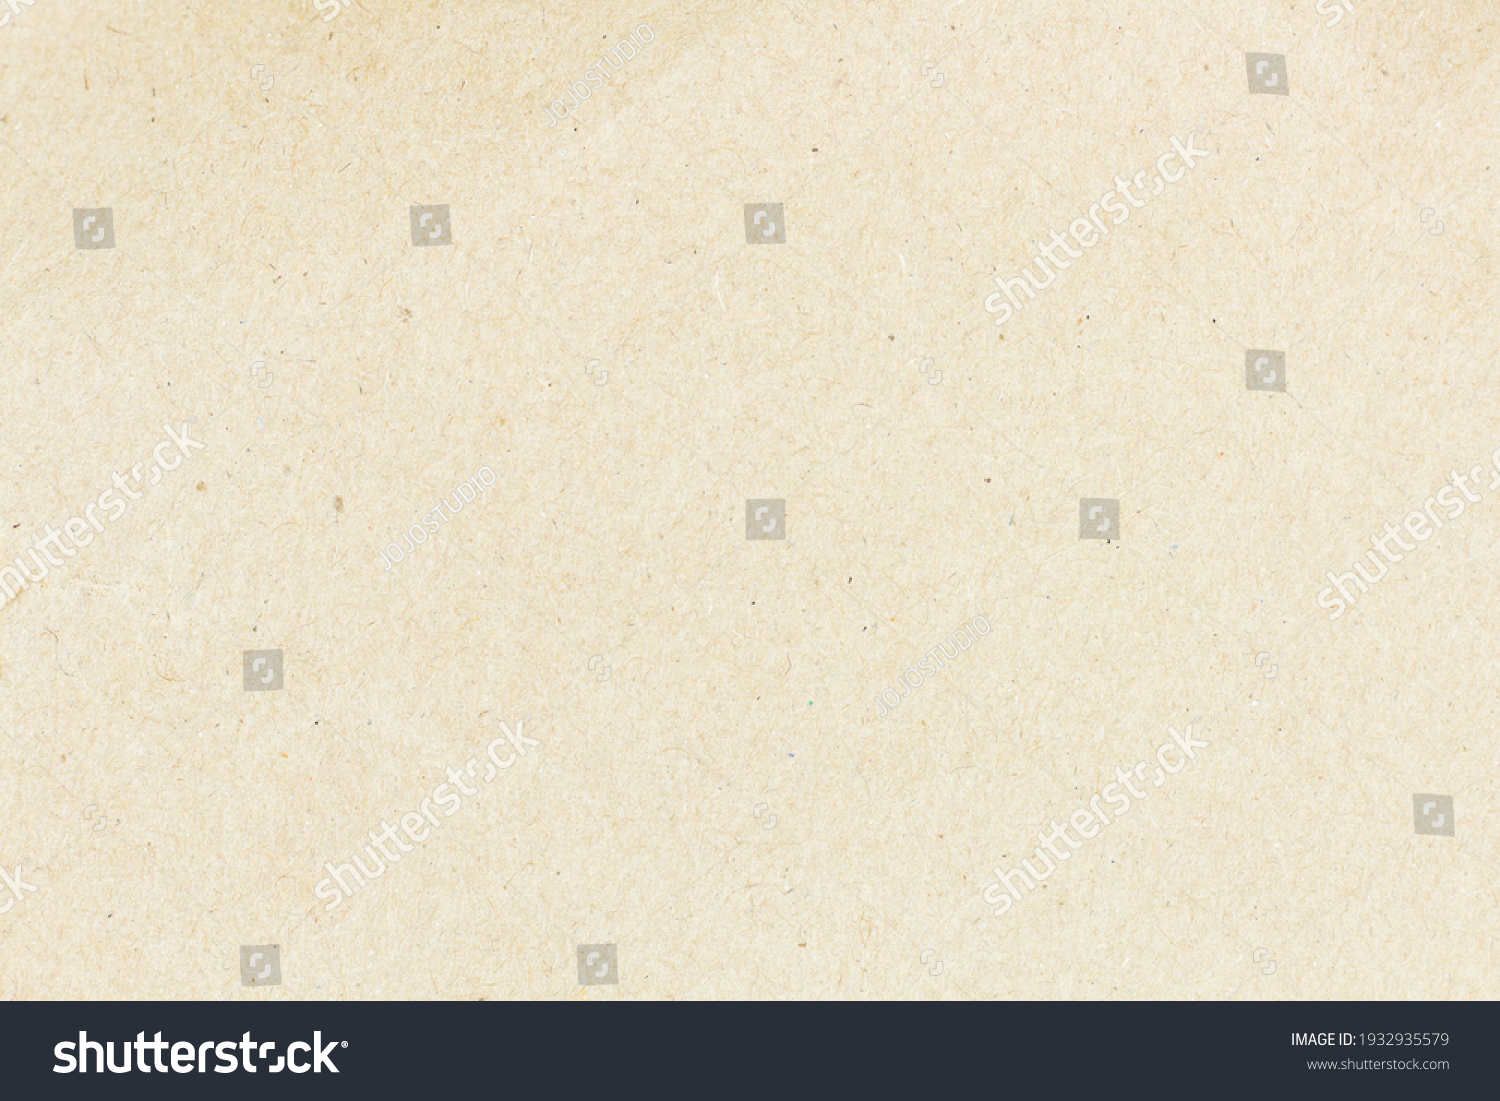 White beige paper background texture light rough textured spotted blank copy space background  #1932935579